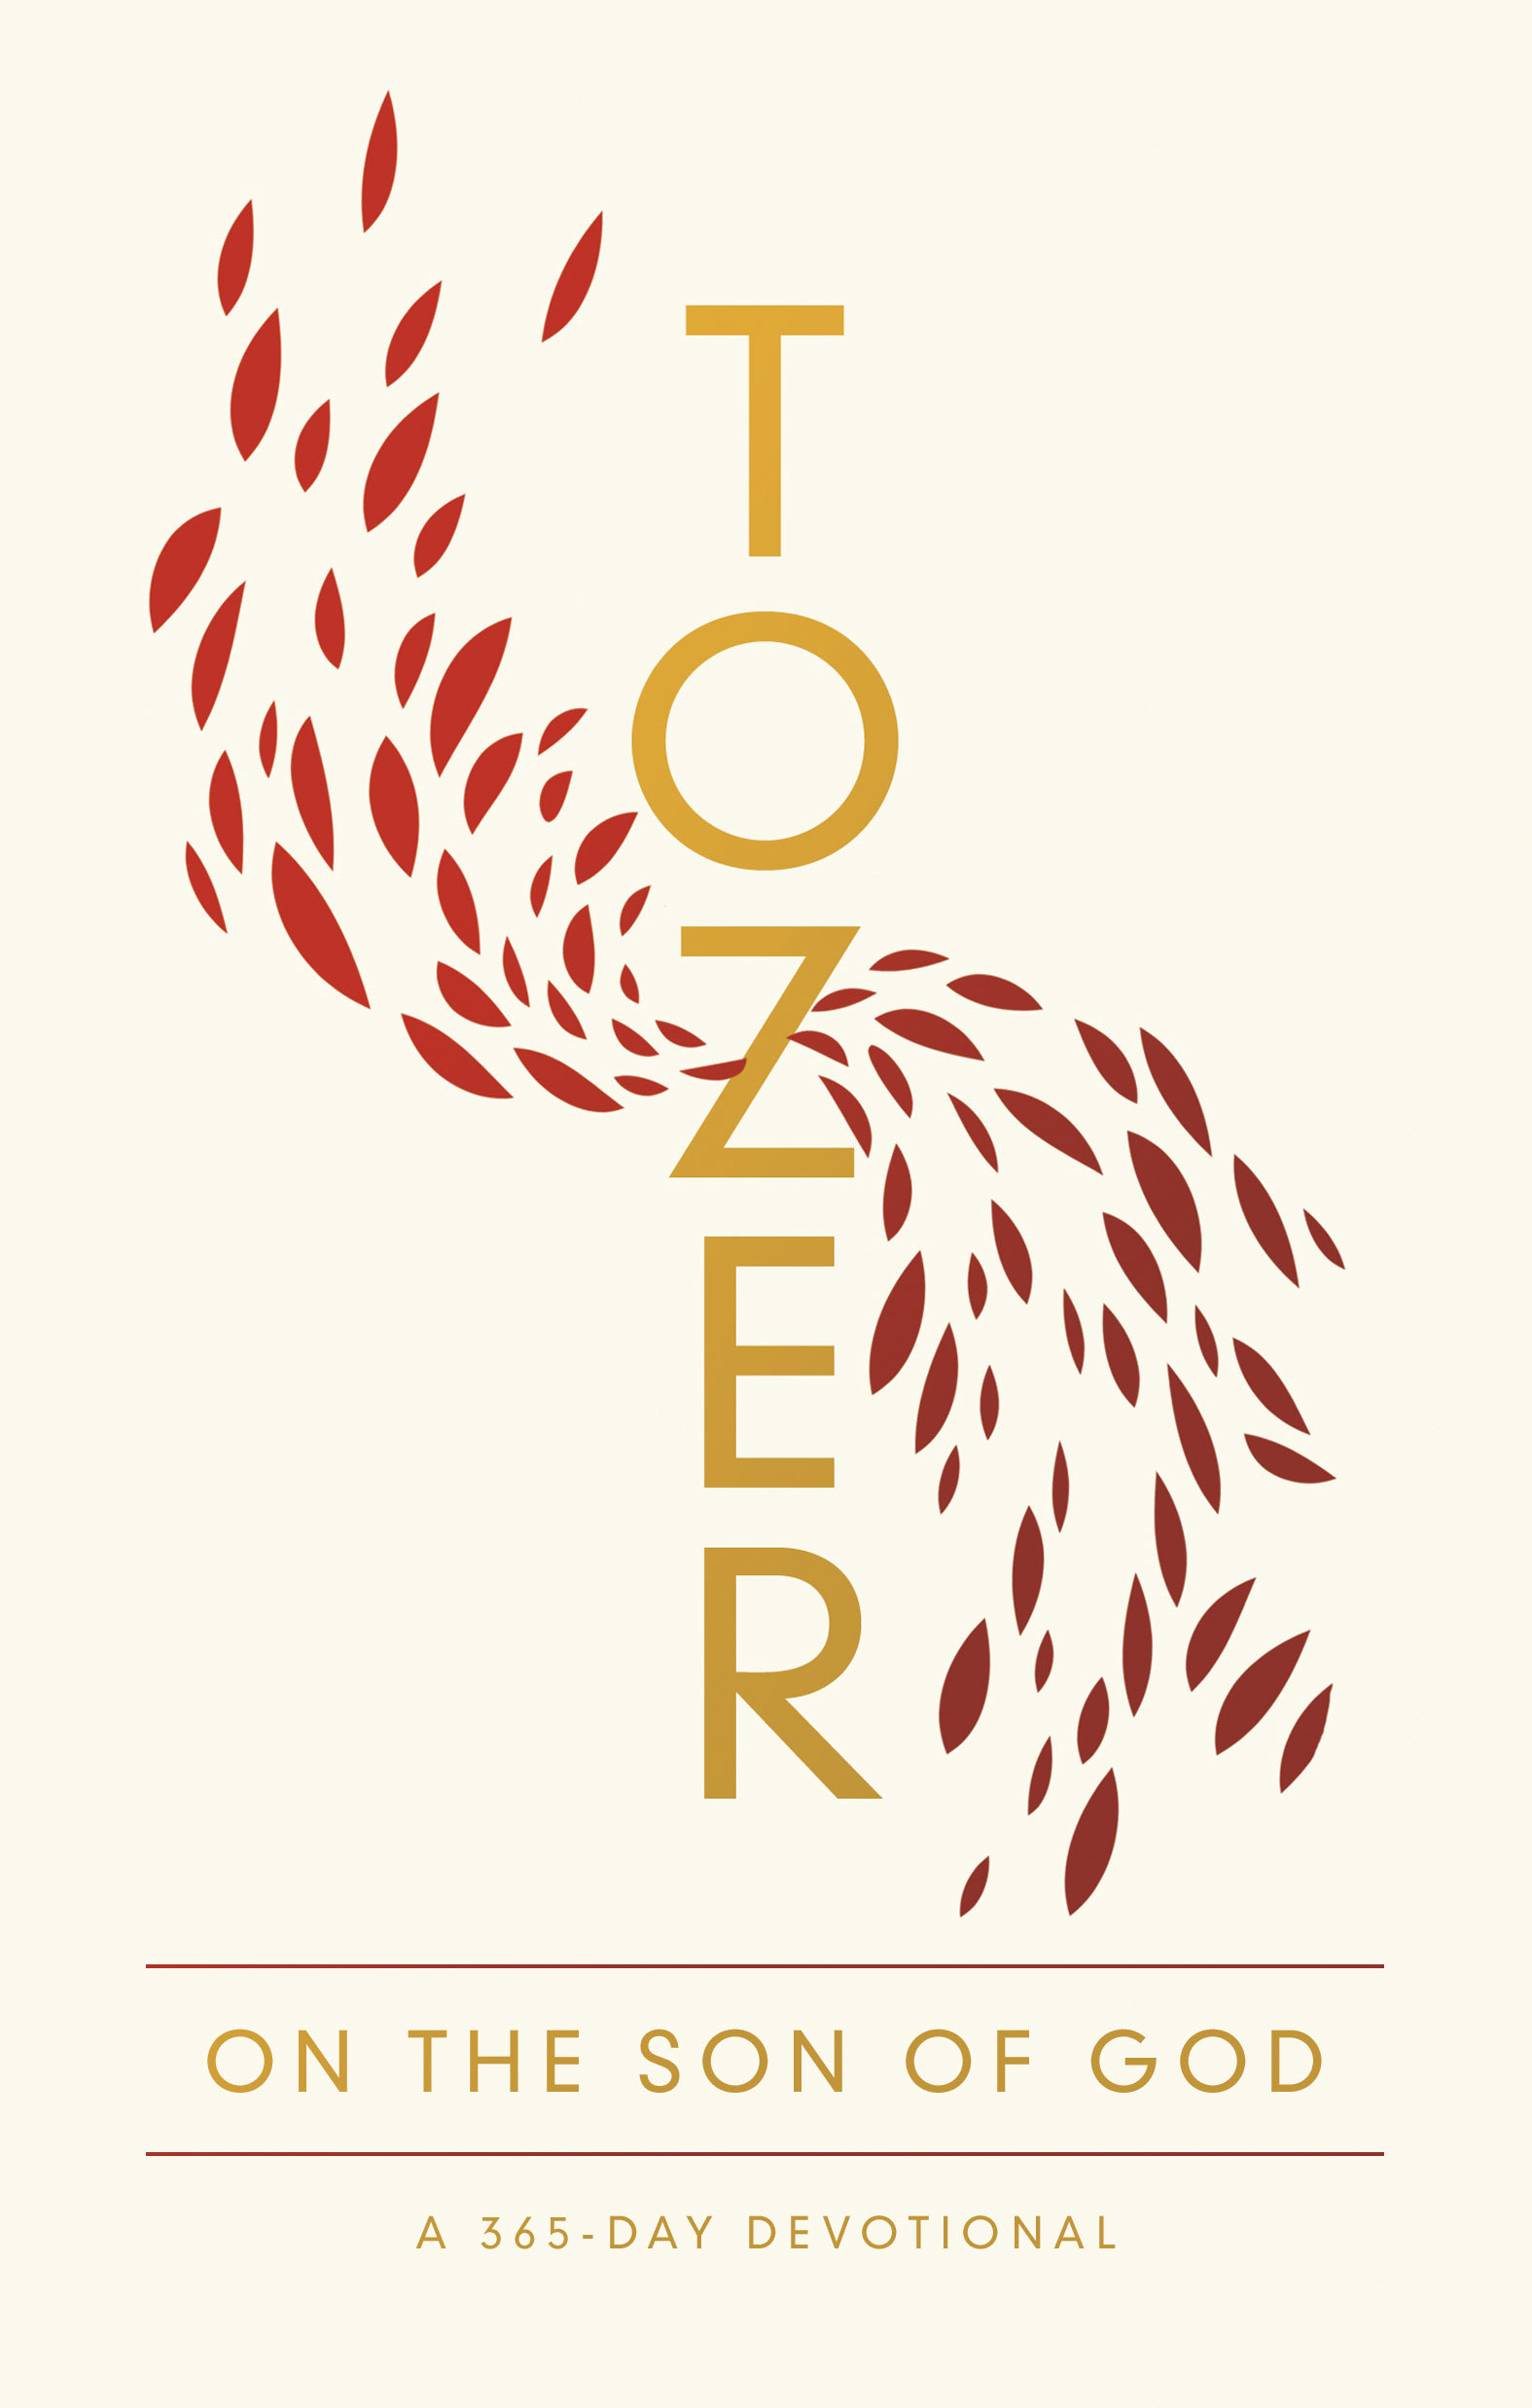 TOZER ON THE SON OF GOD: A 365-DAY DEVOTIONAL